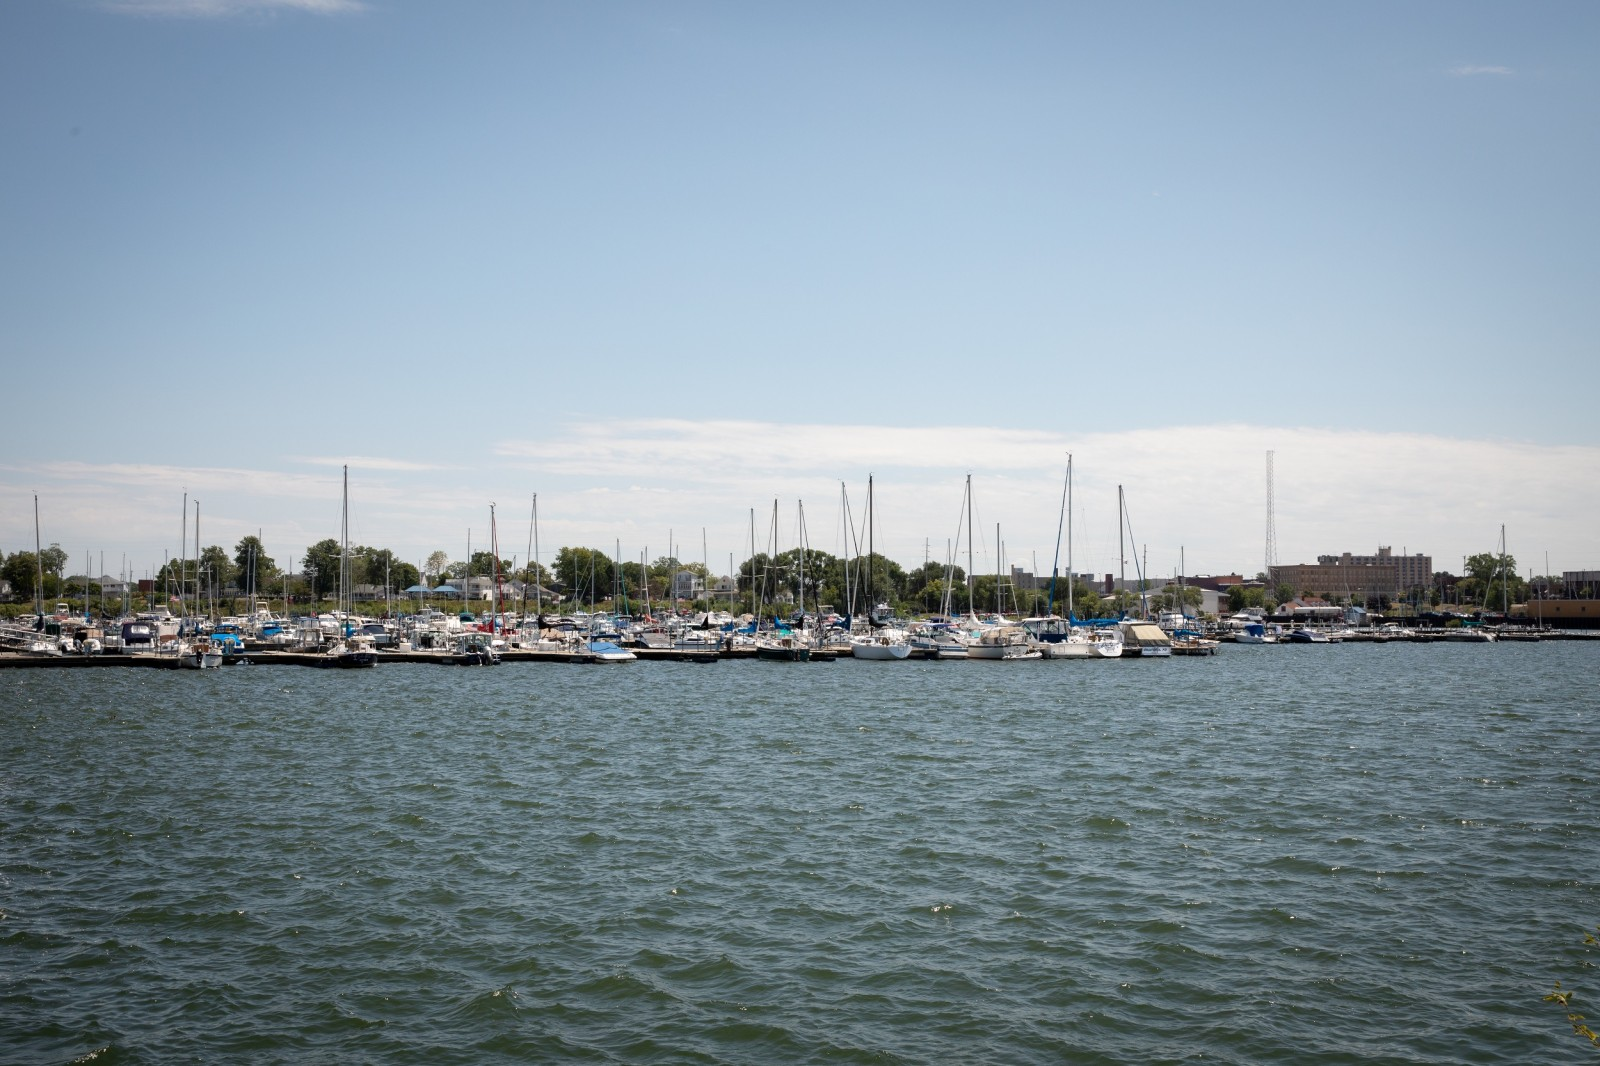 Stormwater and Wastewater Workshops for Marinas